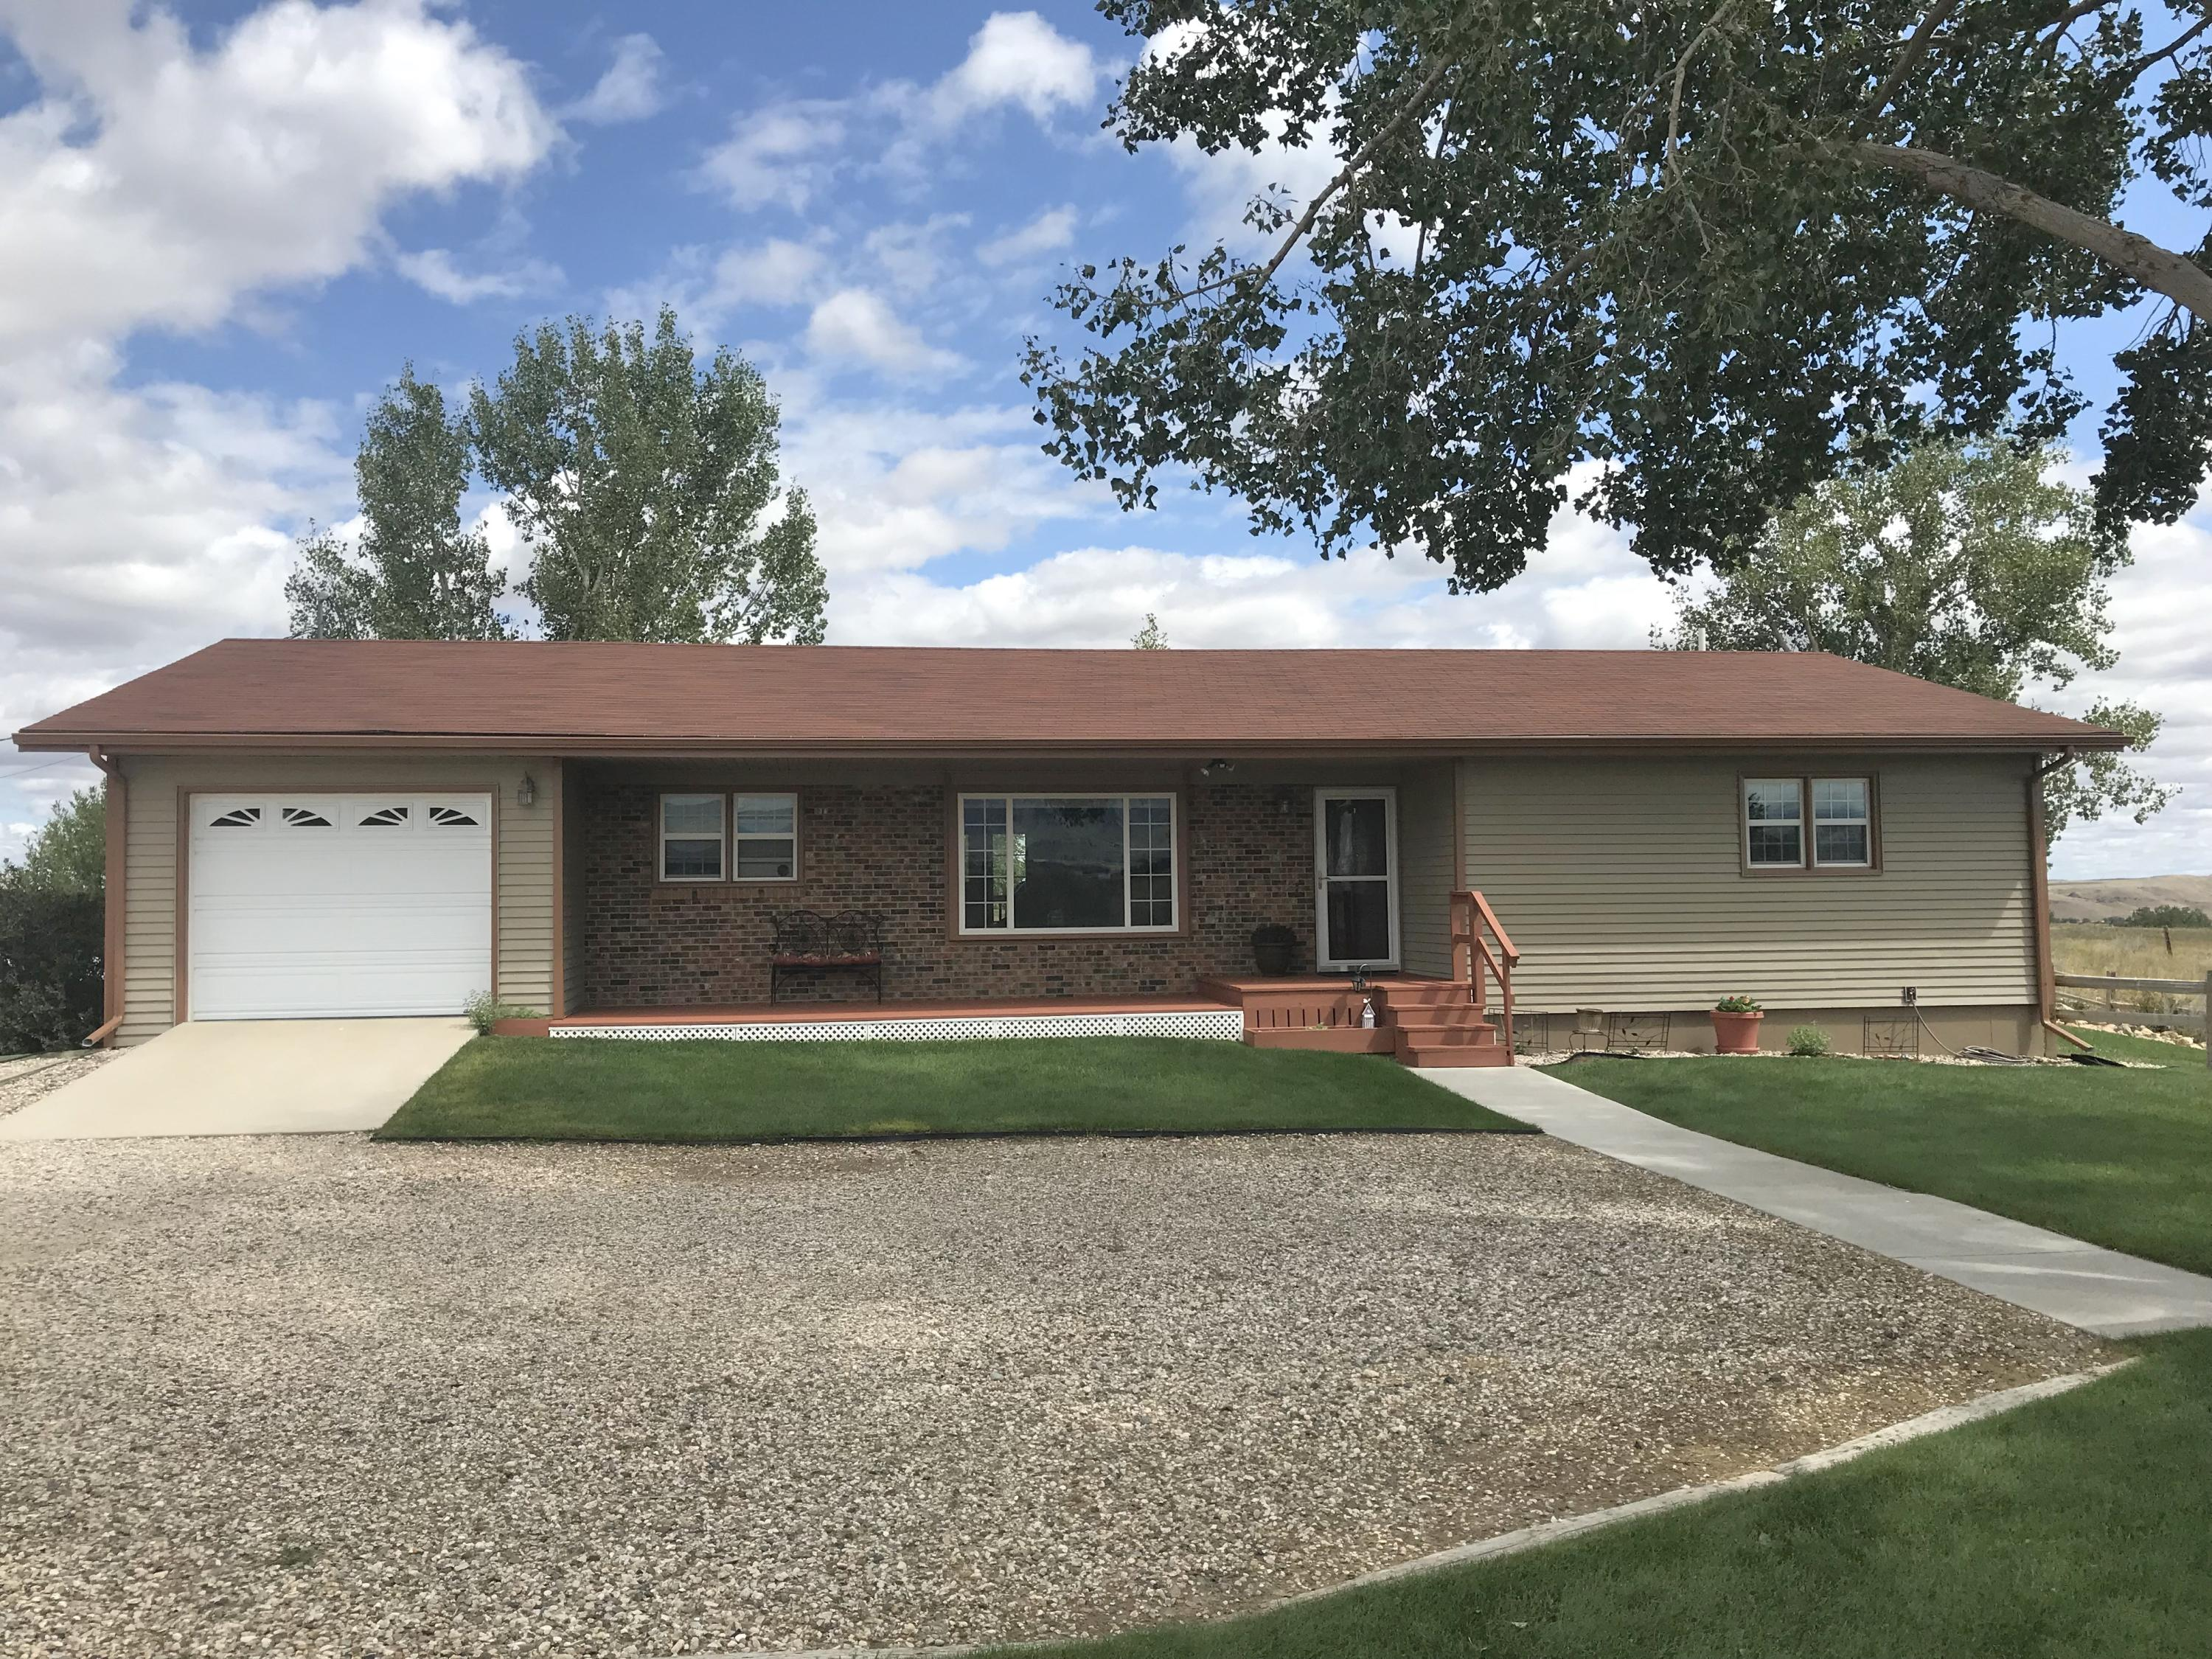 43 Airport Road, Buffalo, Wyoming 82834, 3 Bedrooms Bedrooms, ,2.25 BathroomsBathrooms,Residential,For Sale,Airport,18-922